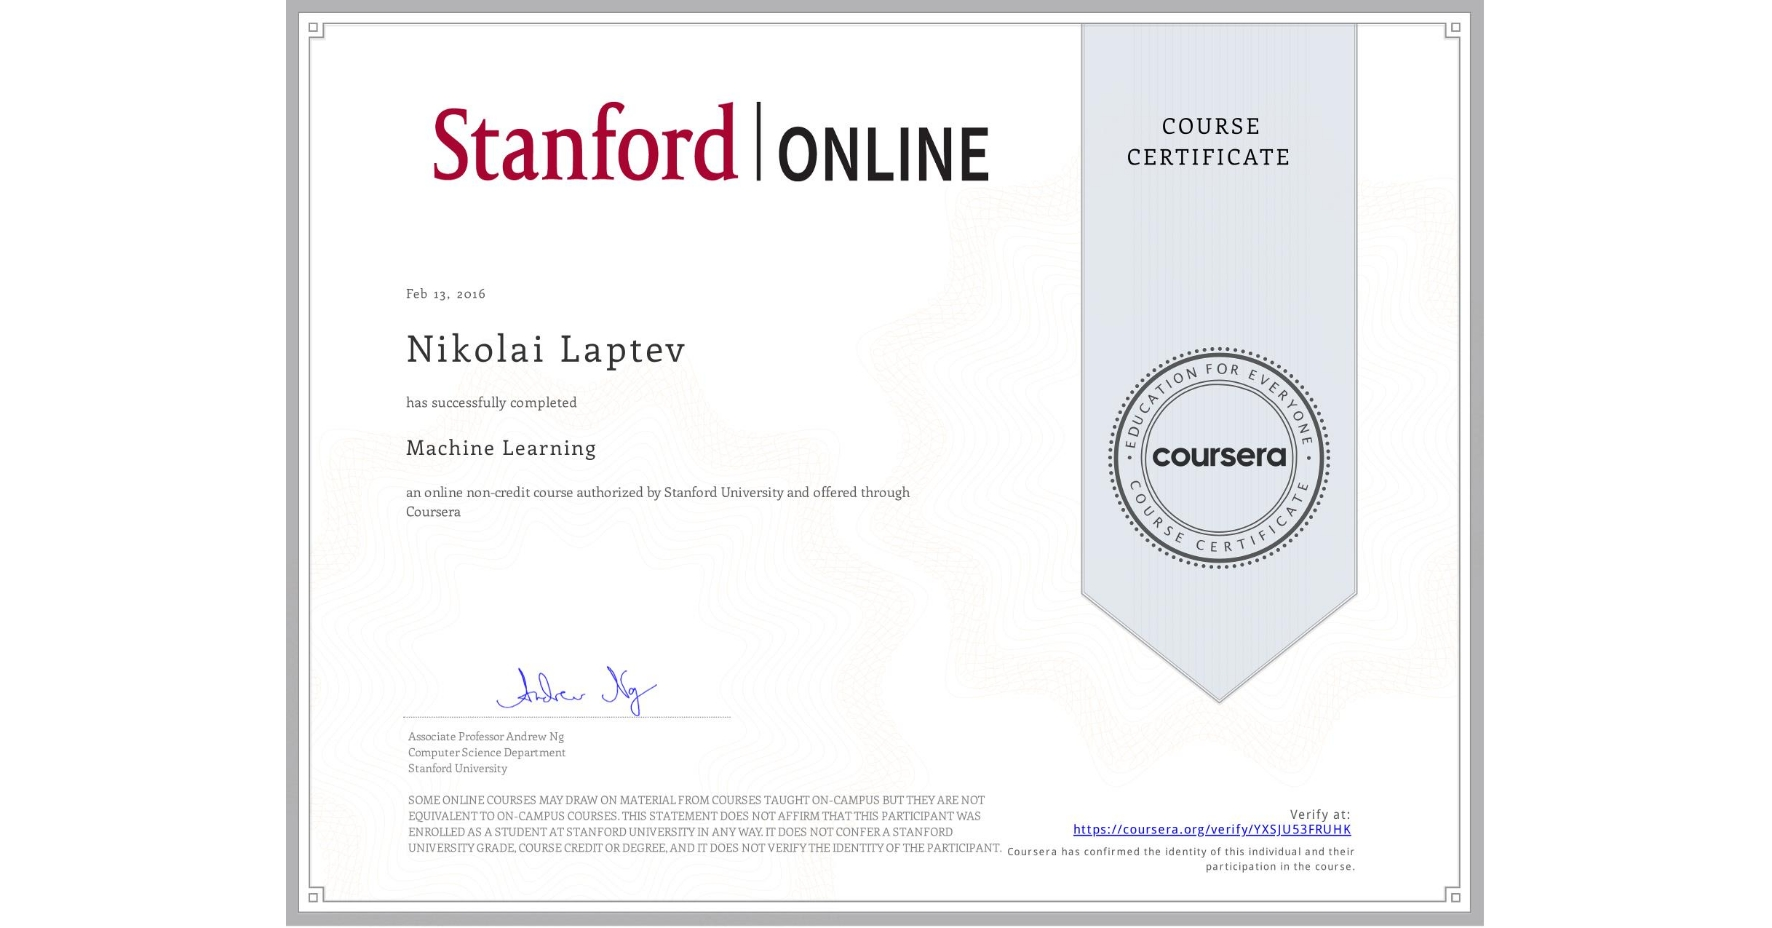 View certificate for Nikolai Laptev, Machine Learning, an online non-credit course authorized by Stanford University and offered through Coursera